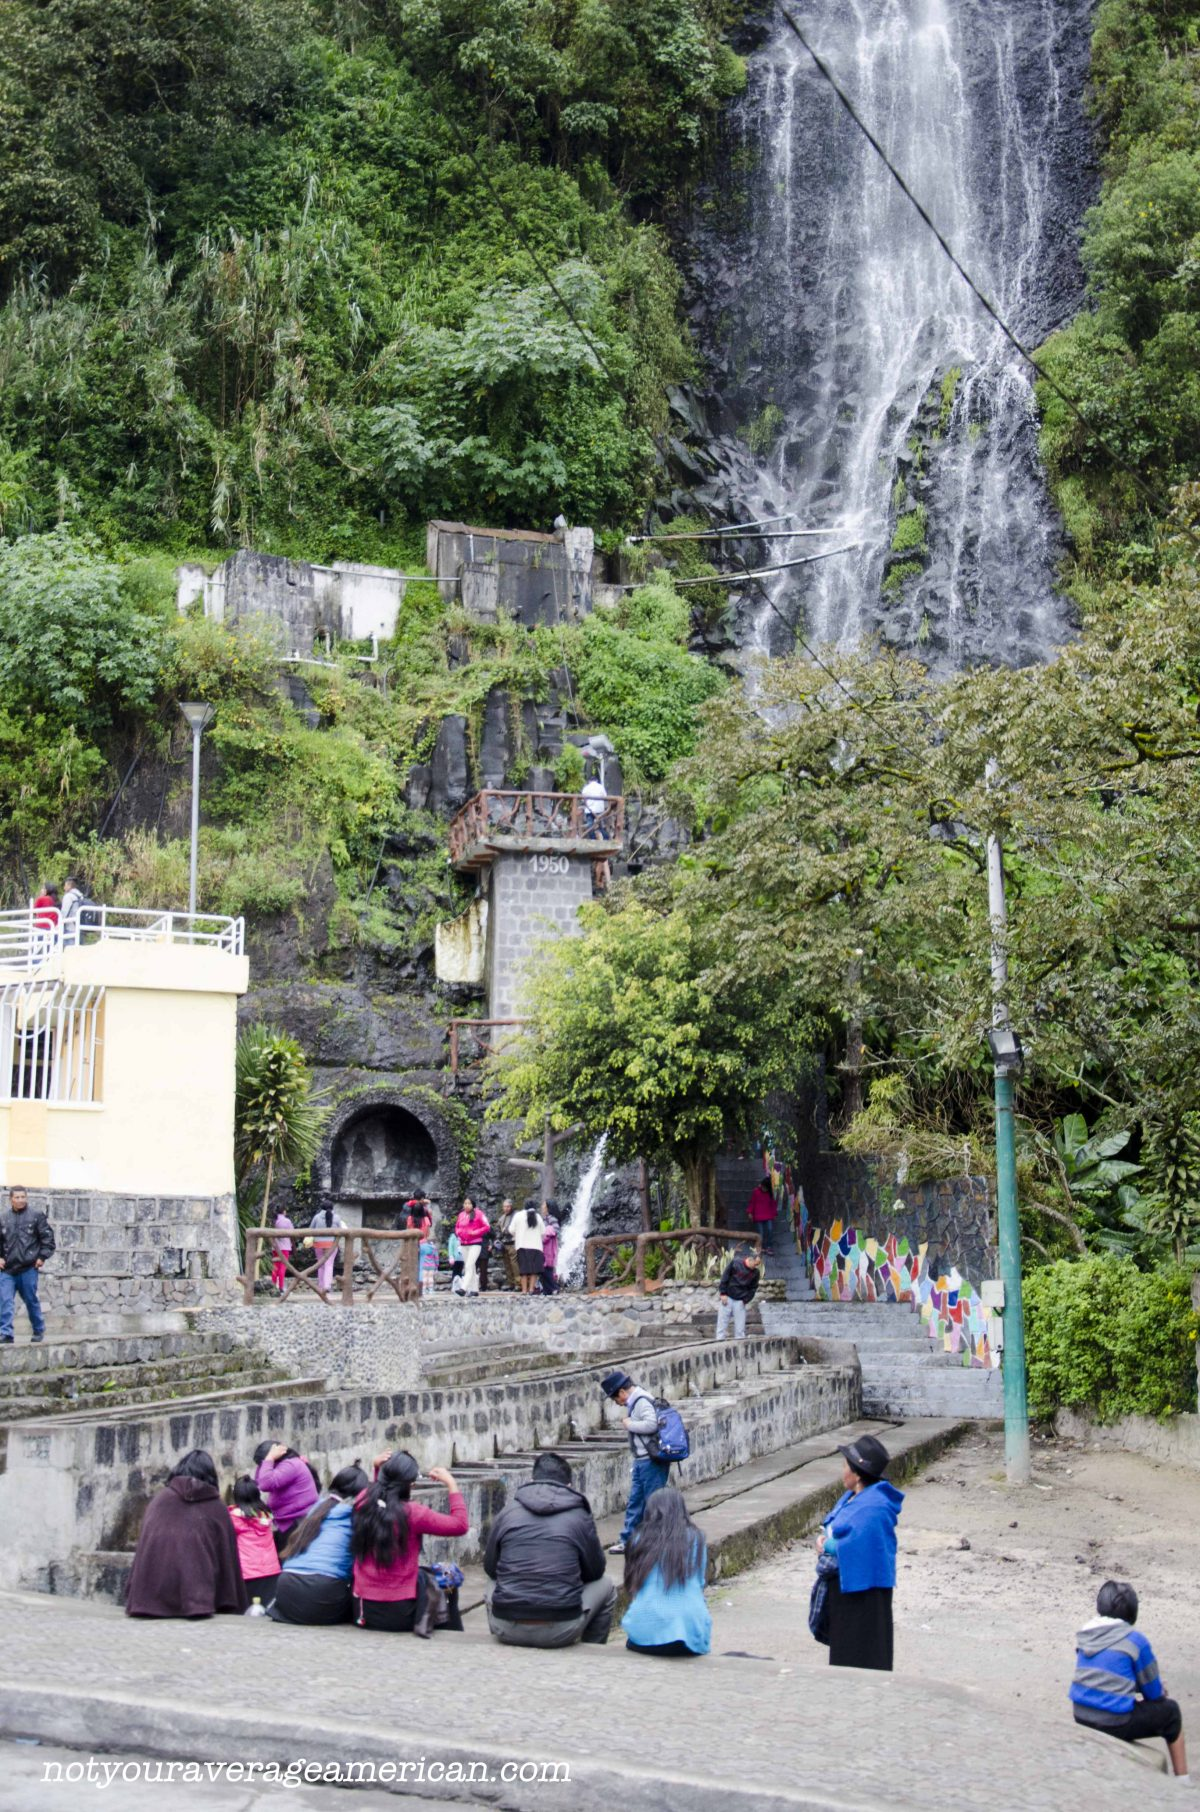 Visitors sitting at the base of La Cabellera de la Virgin (the Virgin's Tresses) in Baños, Ecuador.